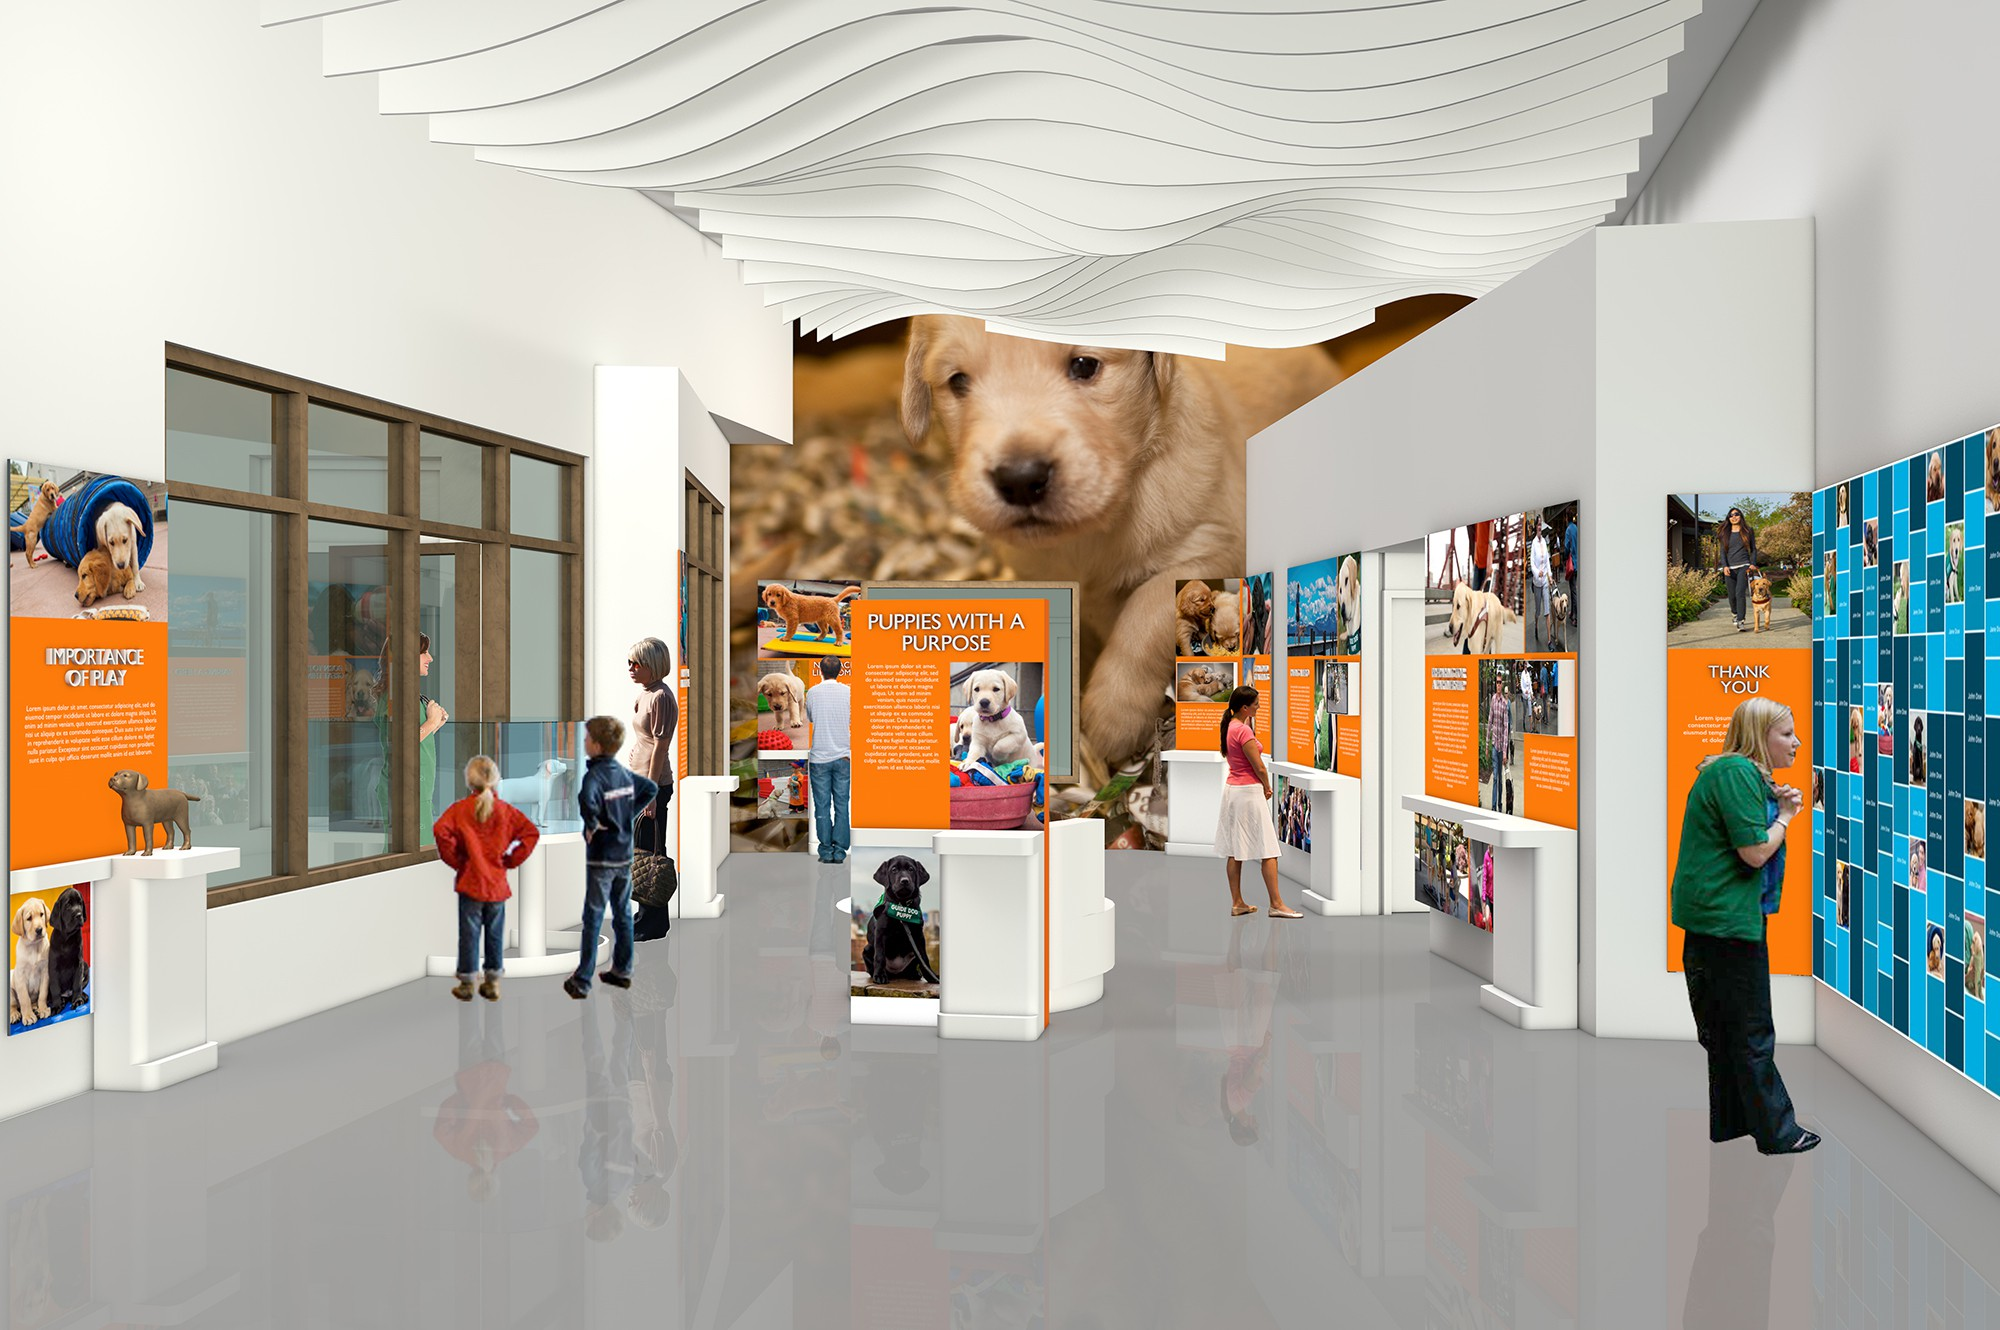 The Puppy Center Learning Lab